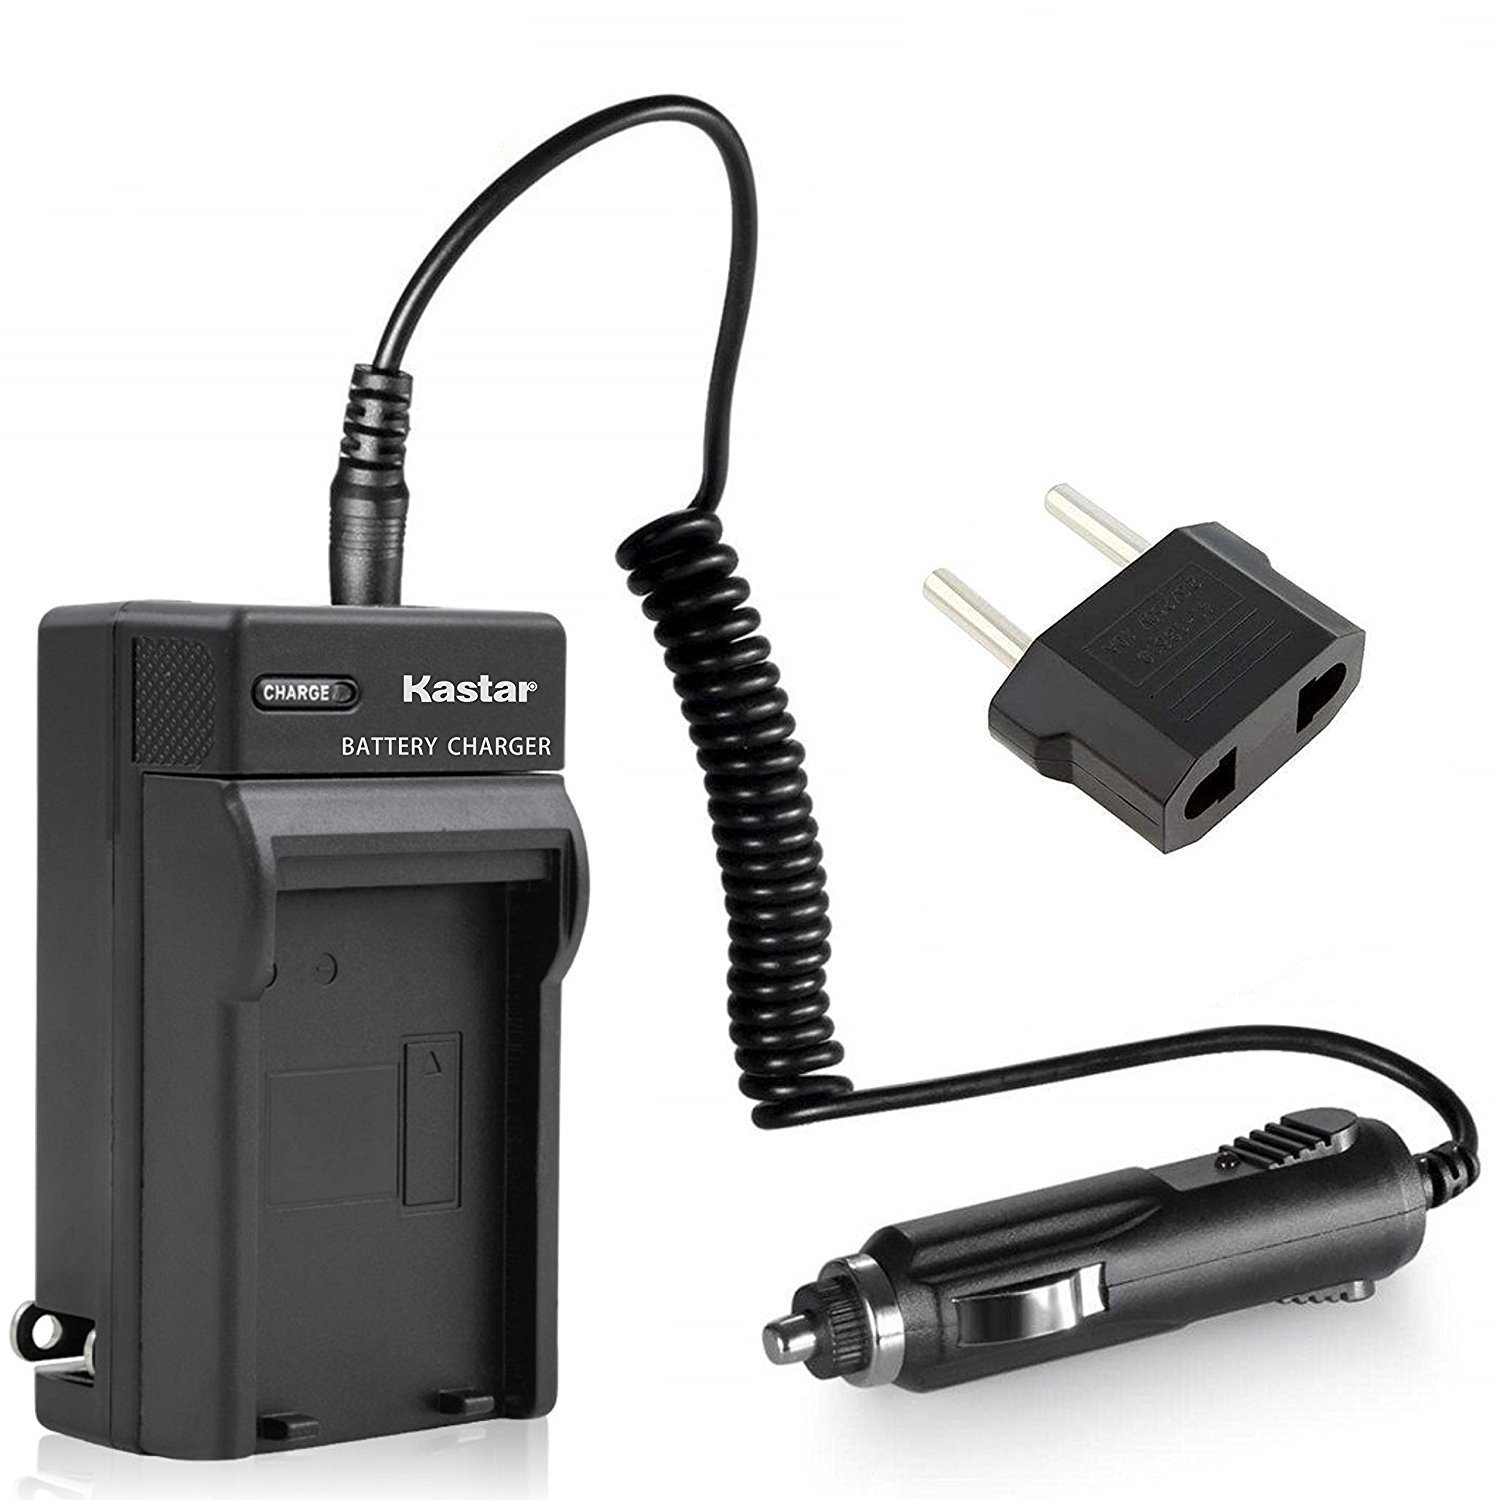 Nook Charger Replacement Walmart Color Wiring Diagram Kastar Camcorder For Sony And More Digital Camera Battery Chargers Photo